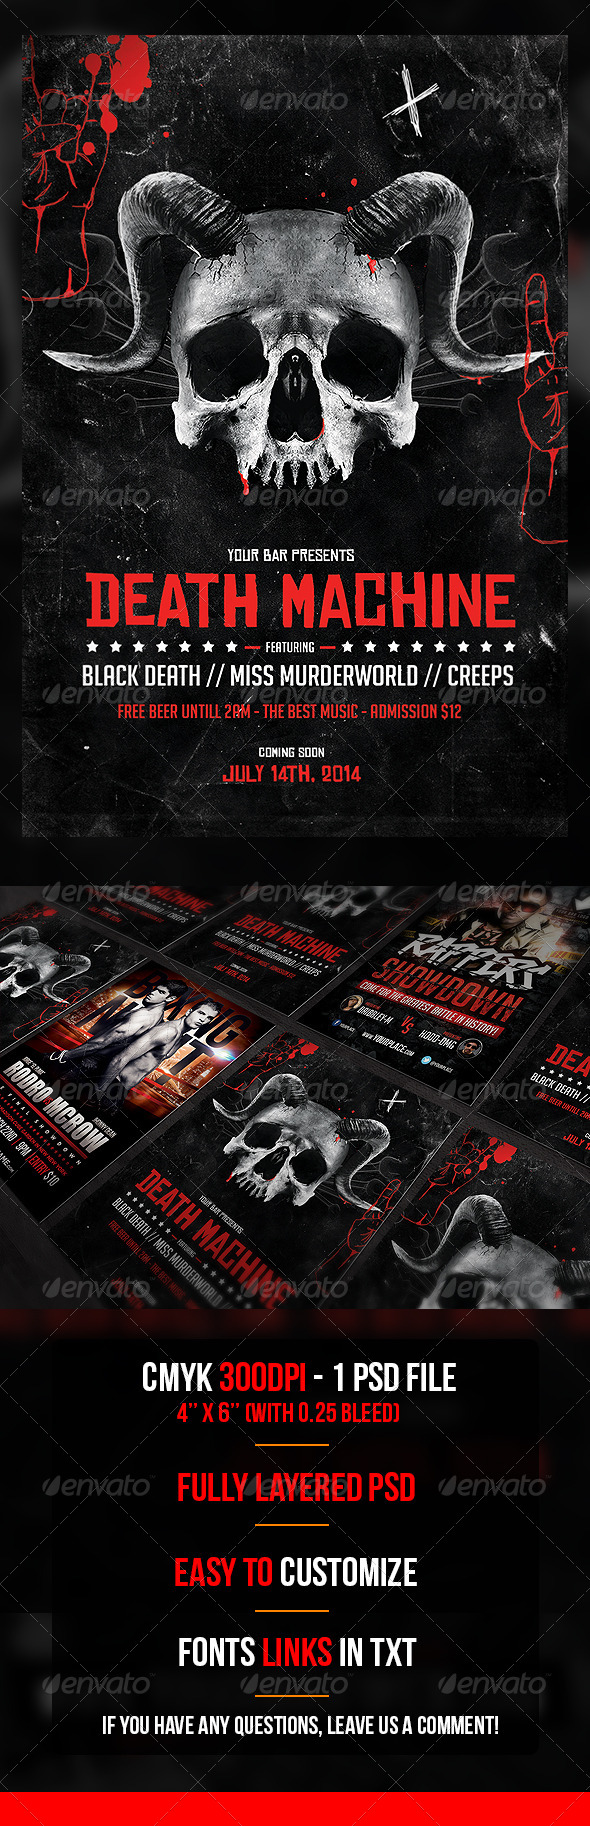 GraphicRiver Death Machine Flyer Template 7426227